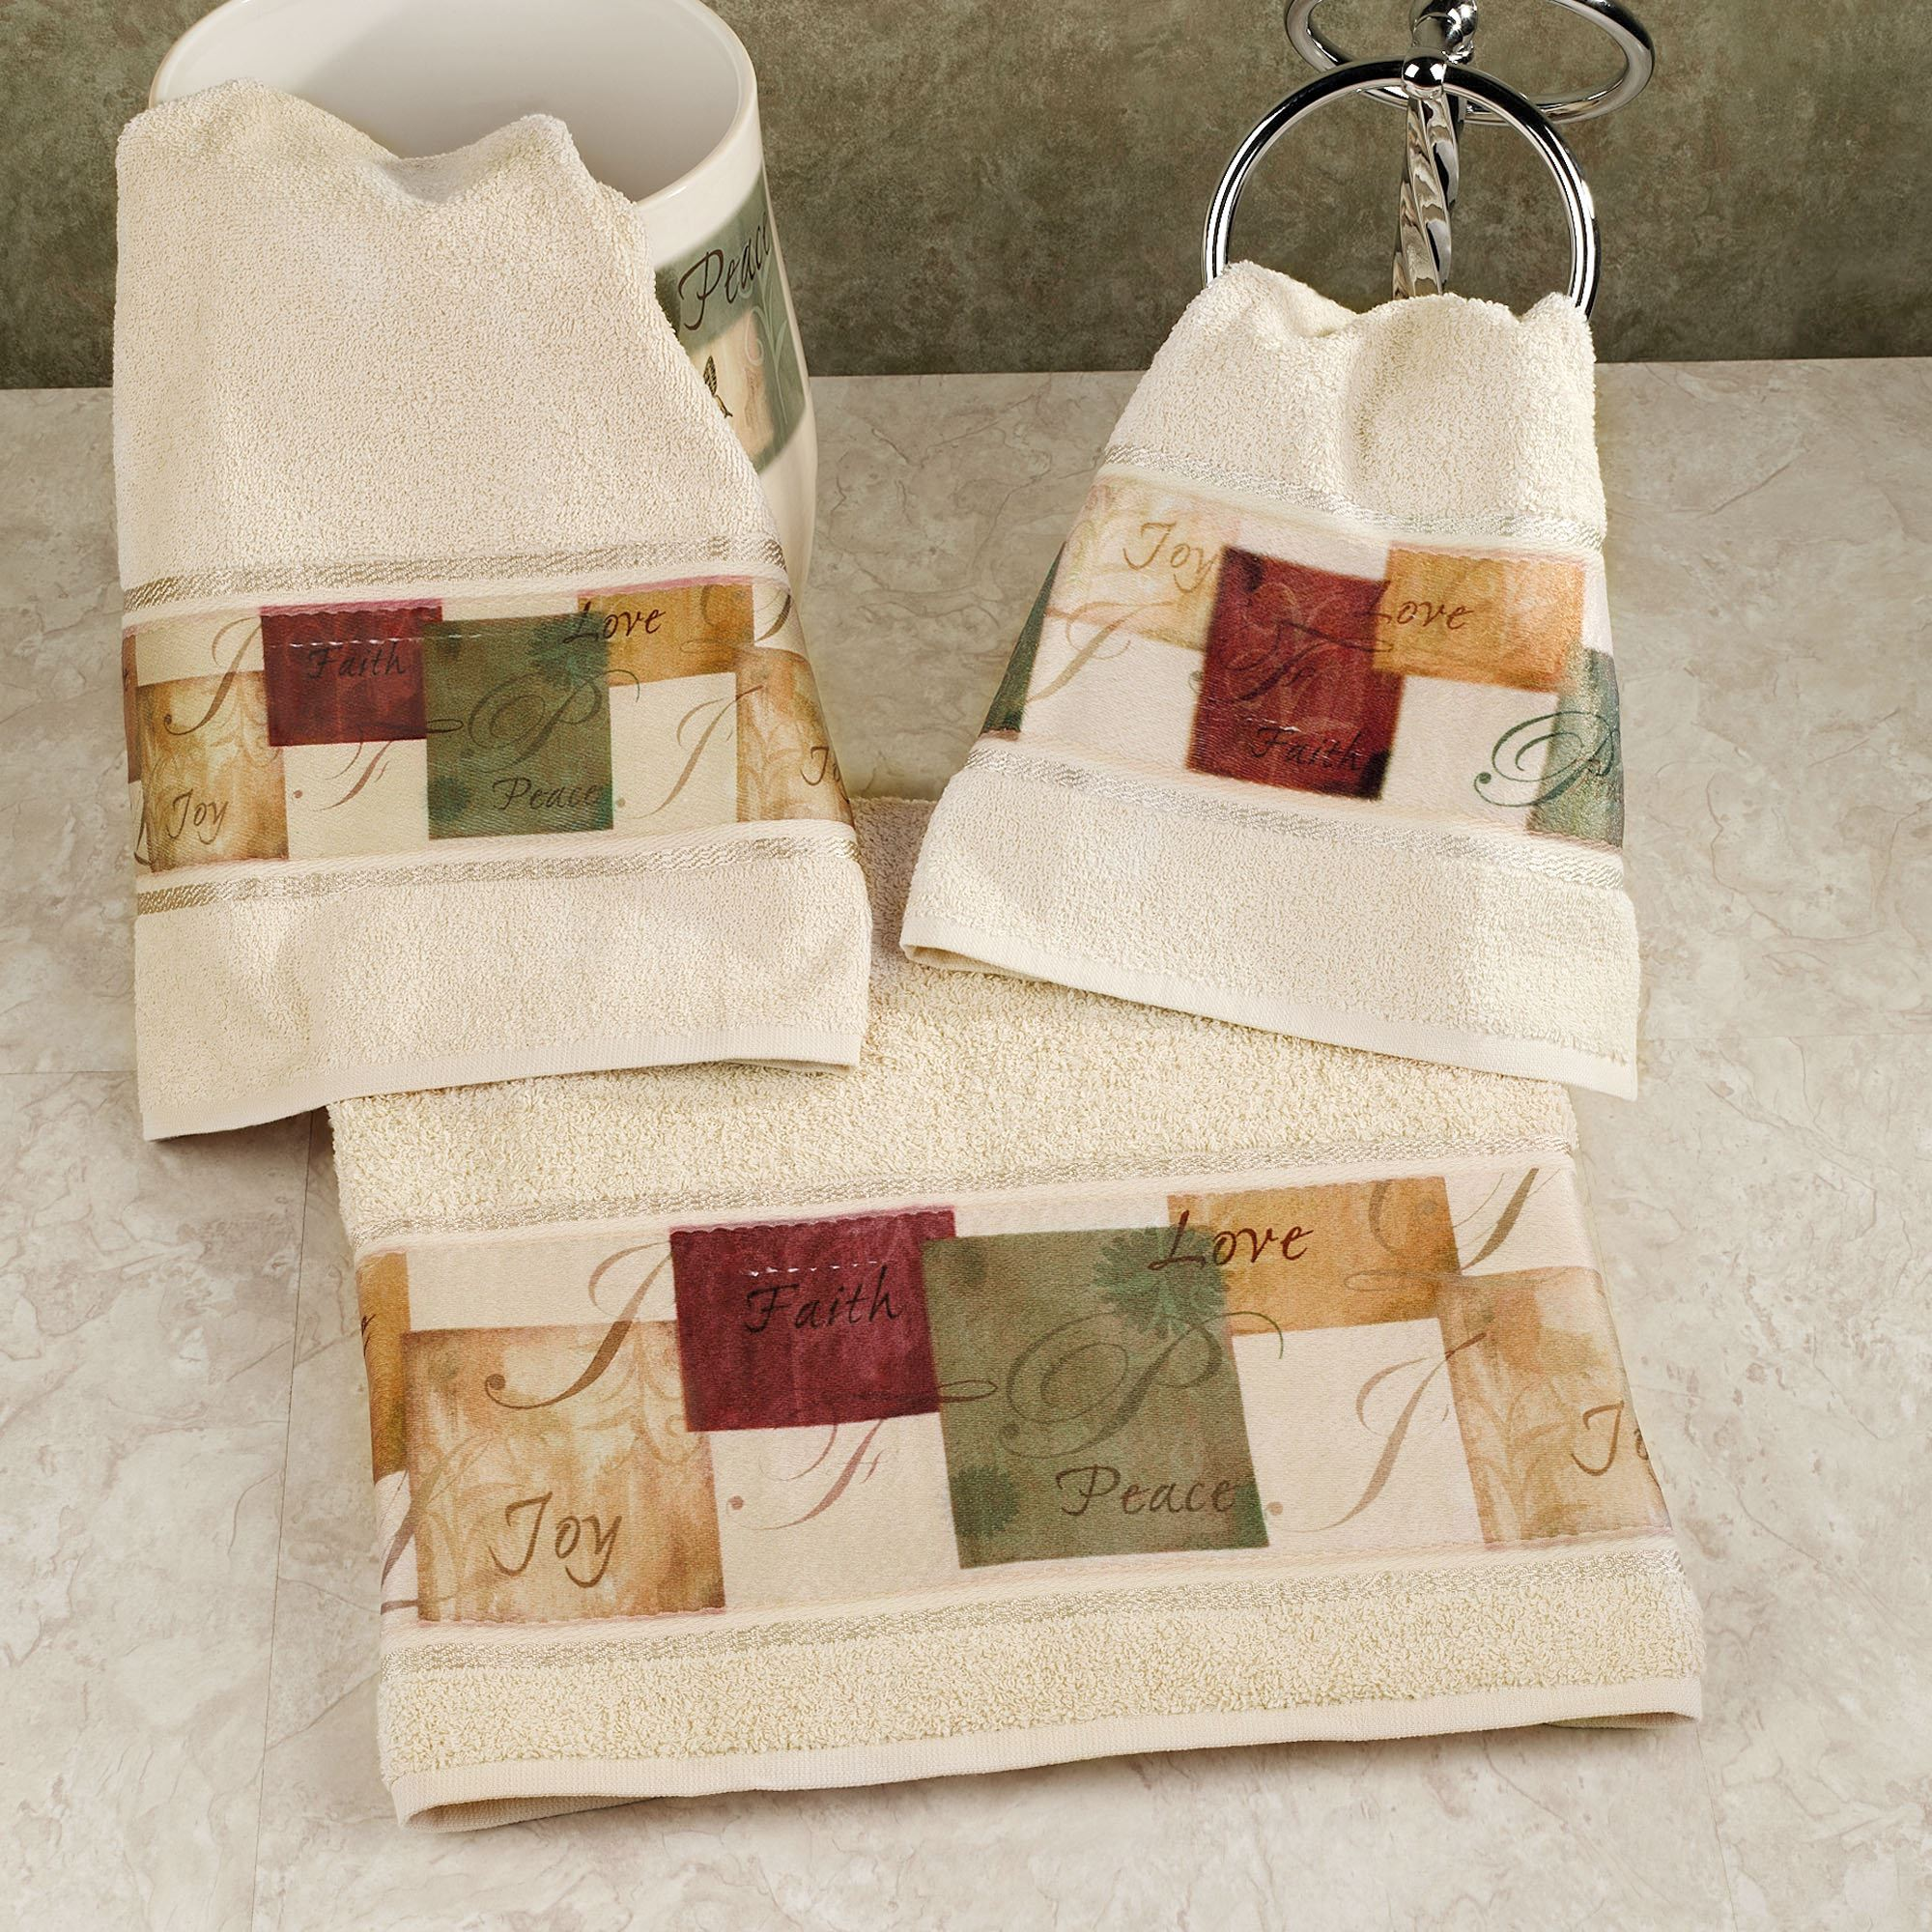 Fullsize Of Bath Towel Sets